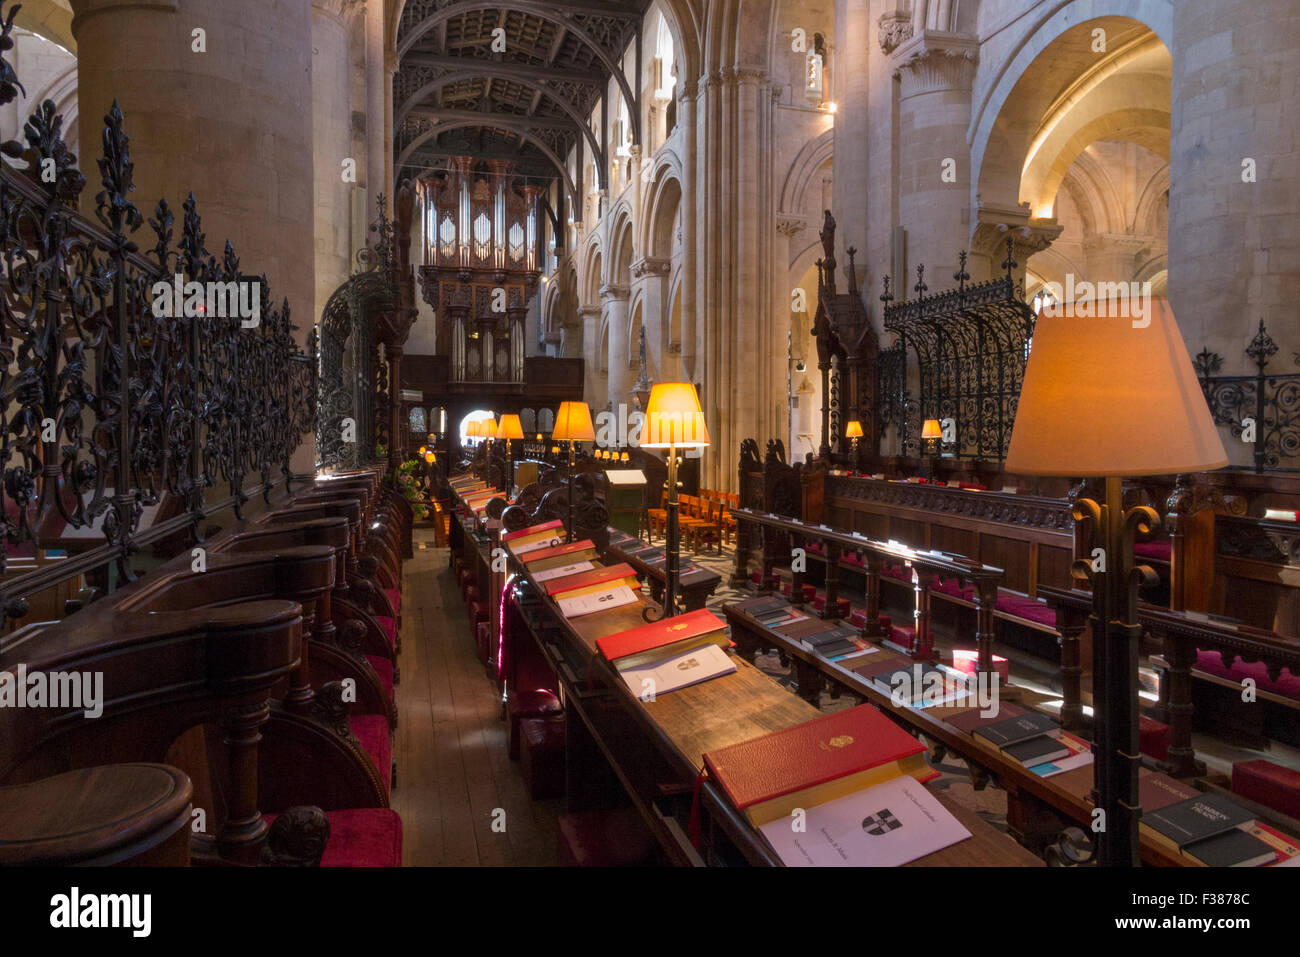 Choir stalls / seats (looking towards the Nave) at Christ Church Cathedral, Oxford University. Oxford. UK. - Stock Image